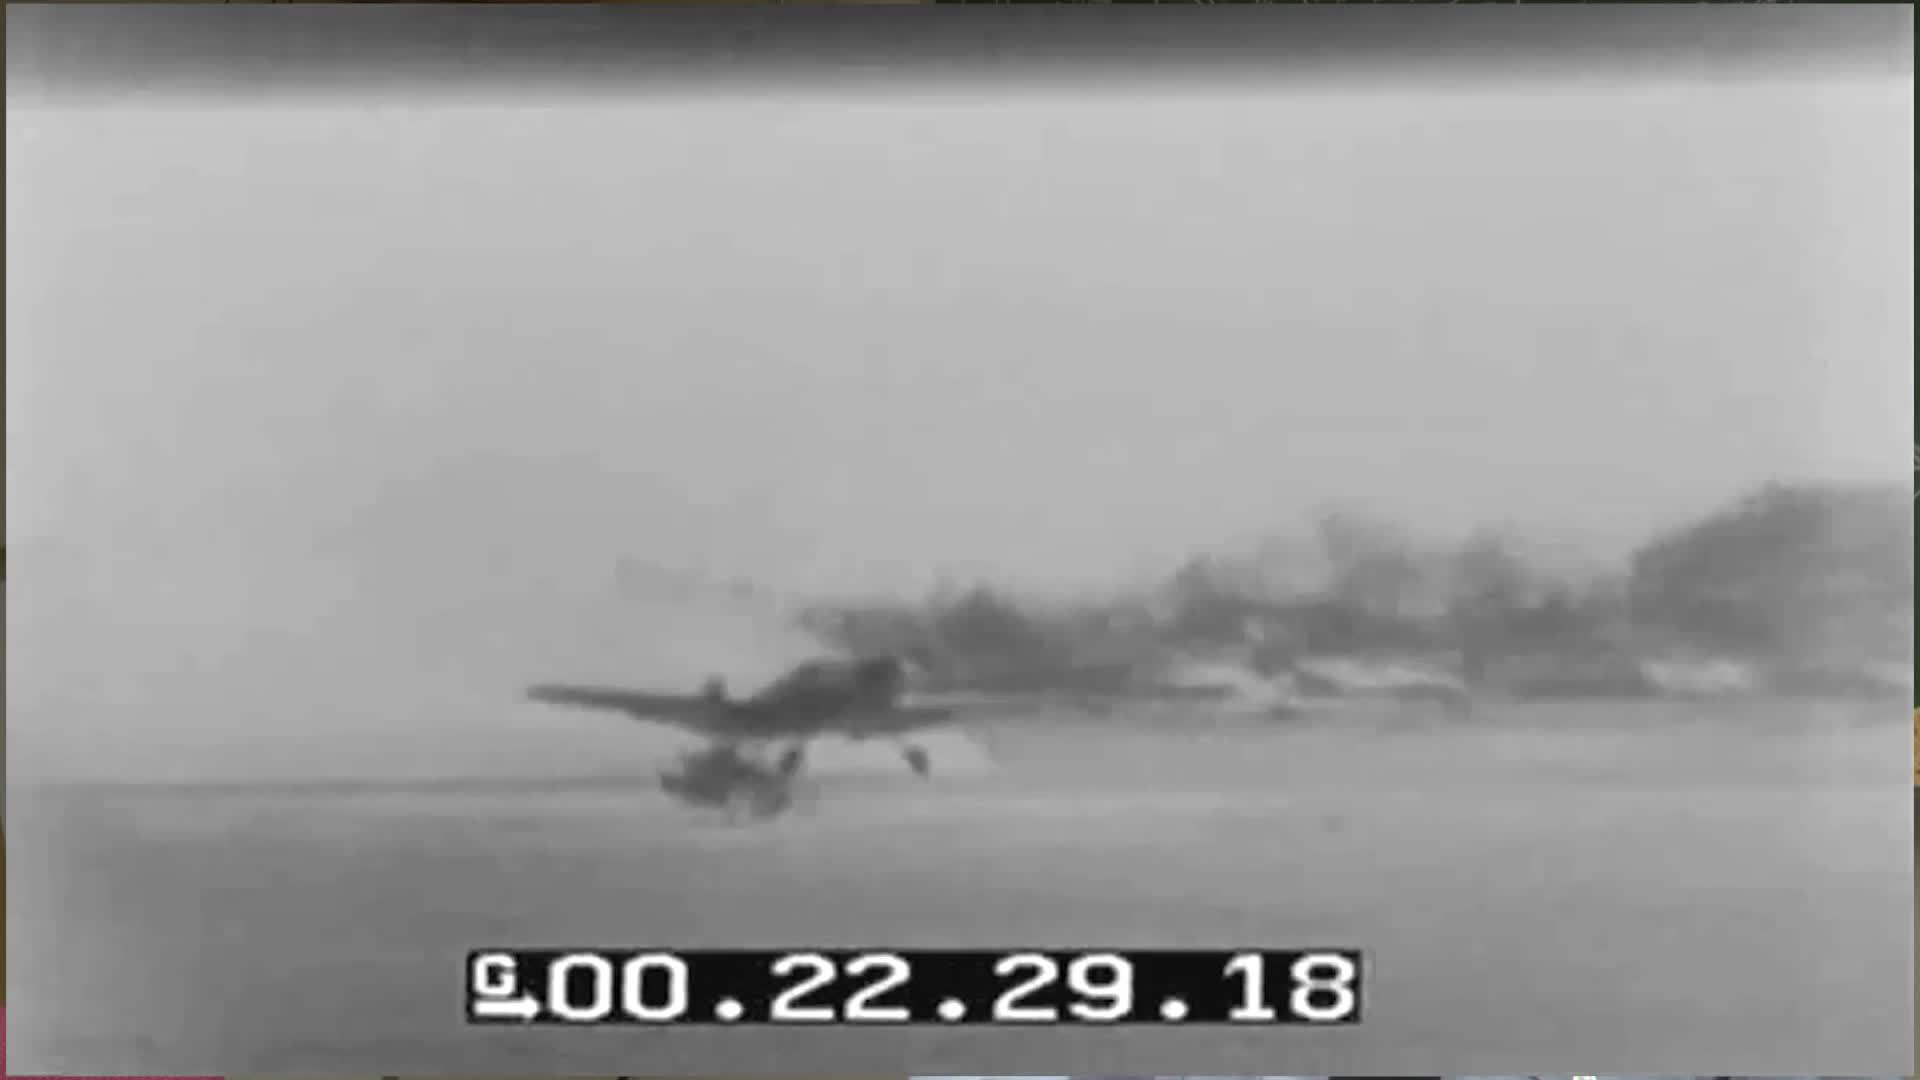 wwiiplanes, Me-109 taking off GIFs